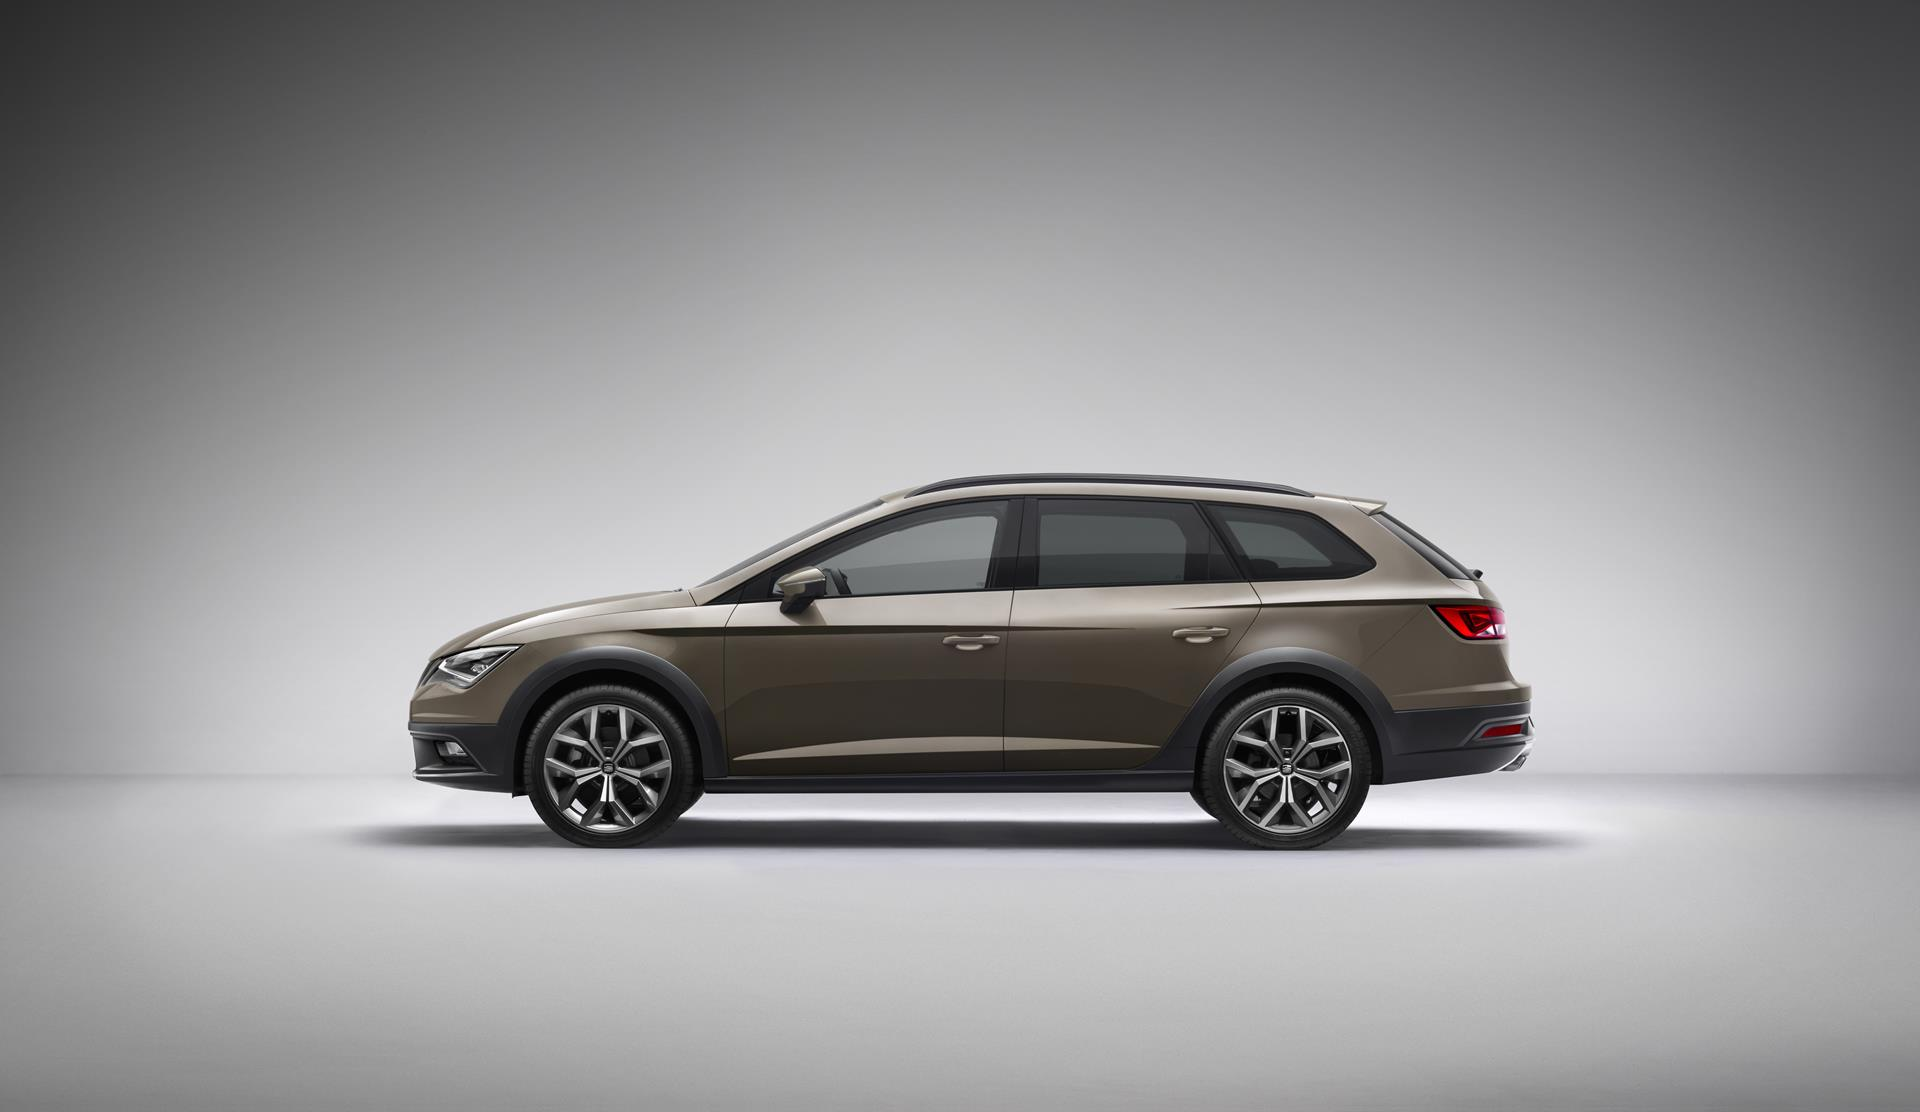 2015 seat leon x perience technical specifications and data engine dimensions and mechanical. Black Bedroom Furniture Sets. Home Design Ideas